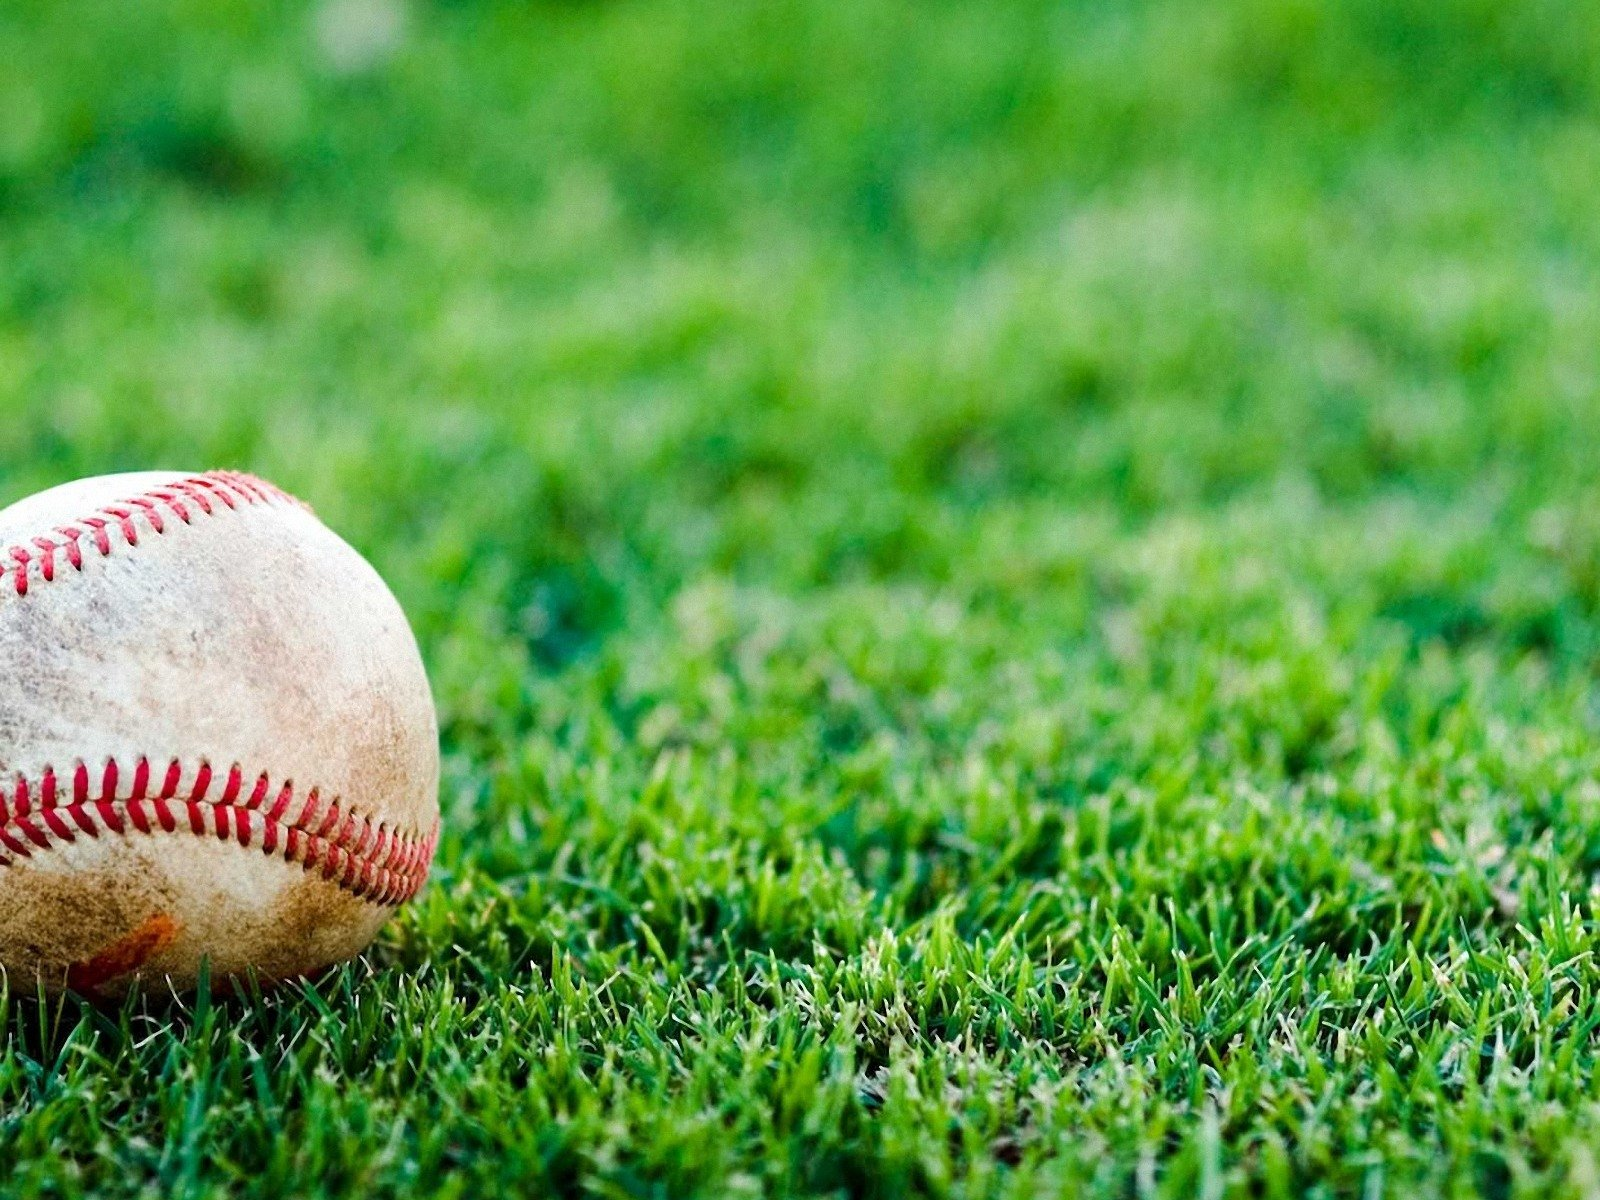 baseball backgrounds 1600x1200 Wallpapers 1600x1200 Wallpapers 1600x1200